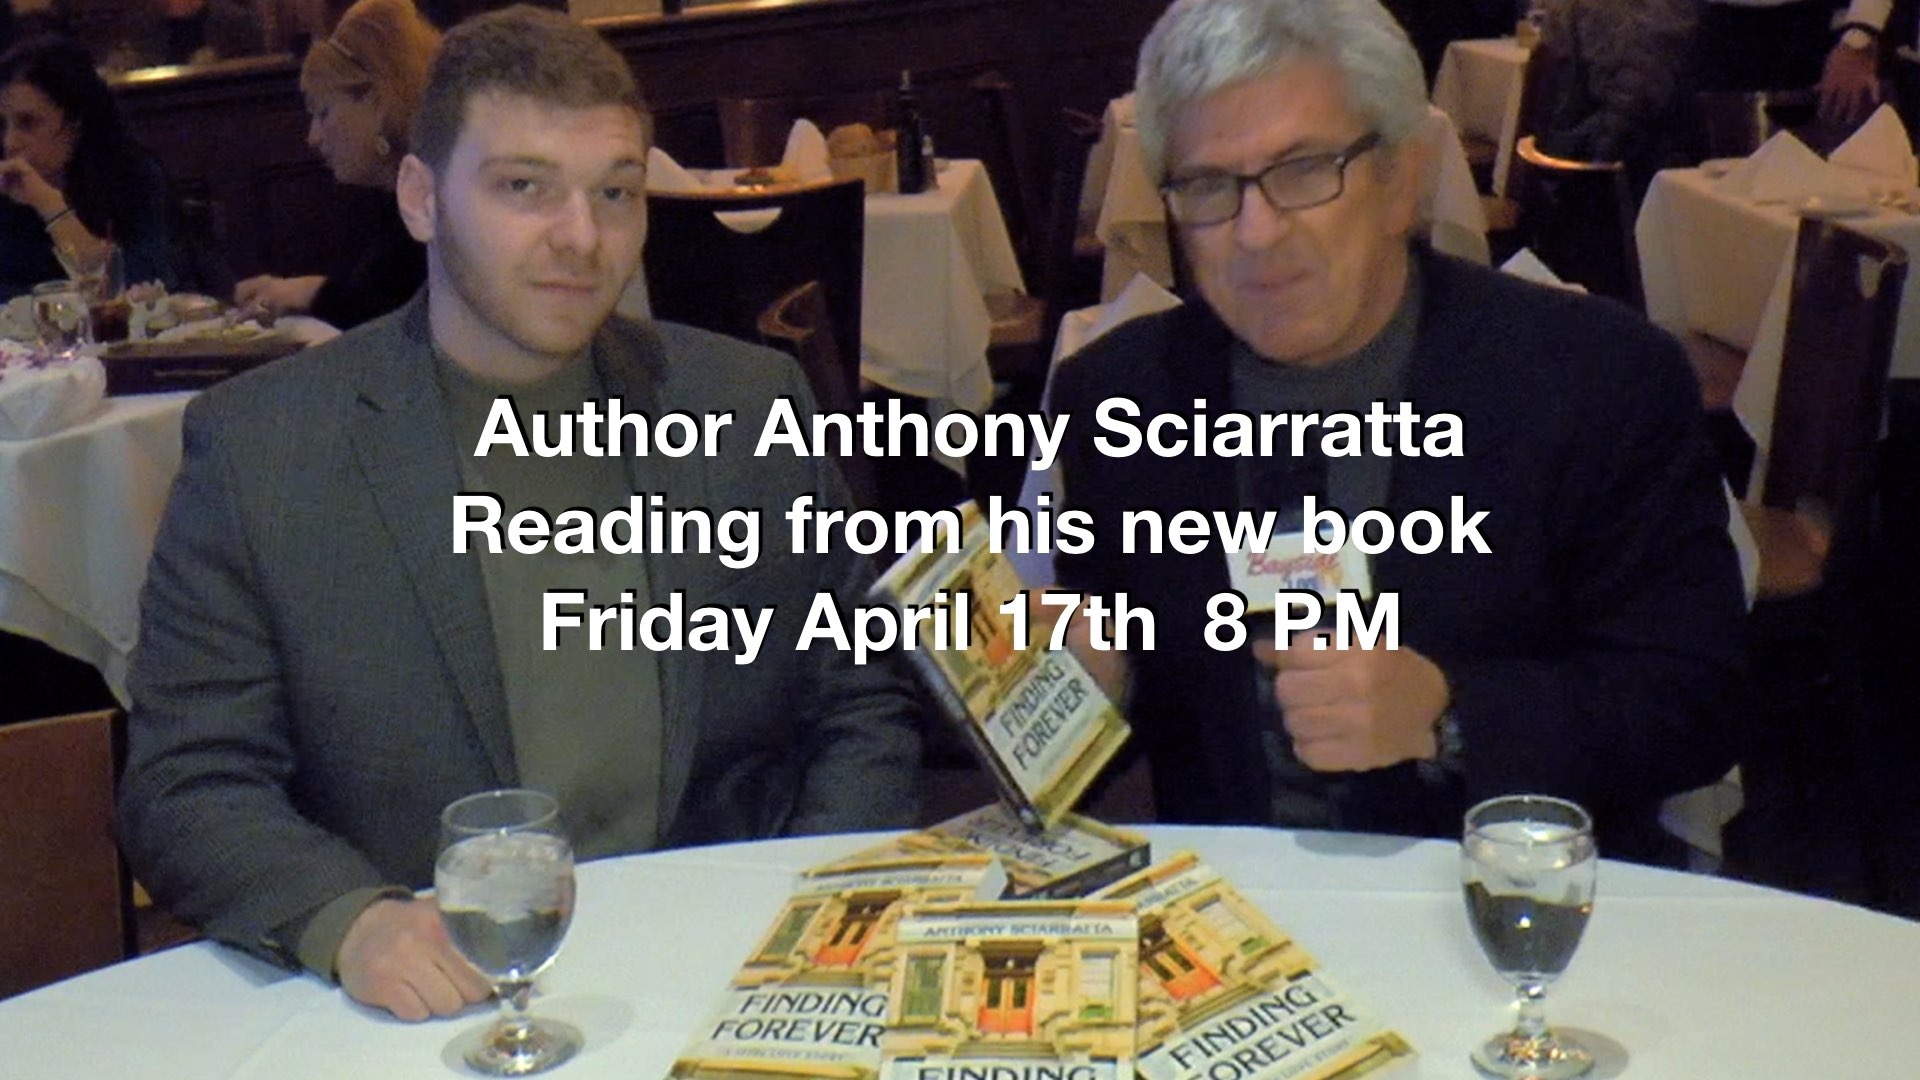 Author Anthony Sciarratta Reads from his new book